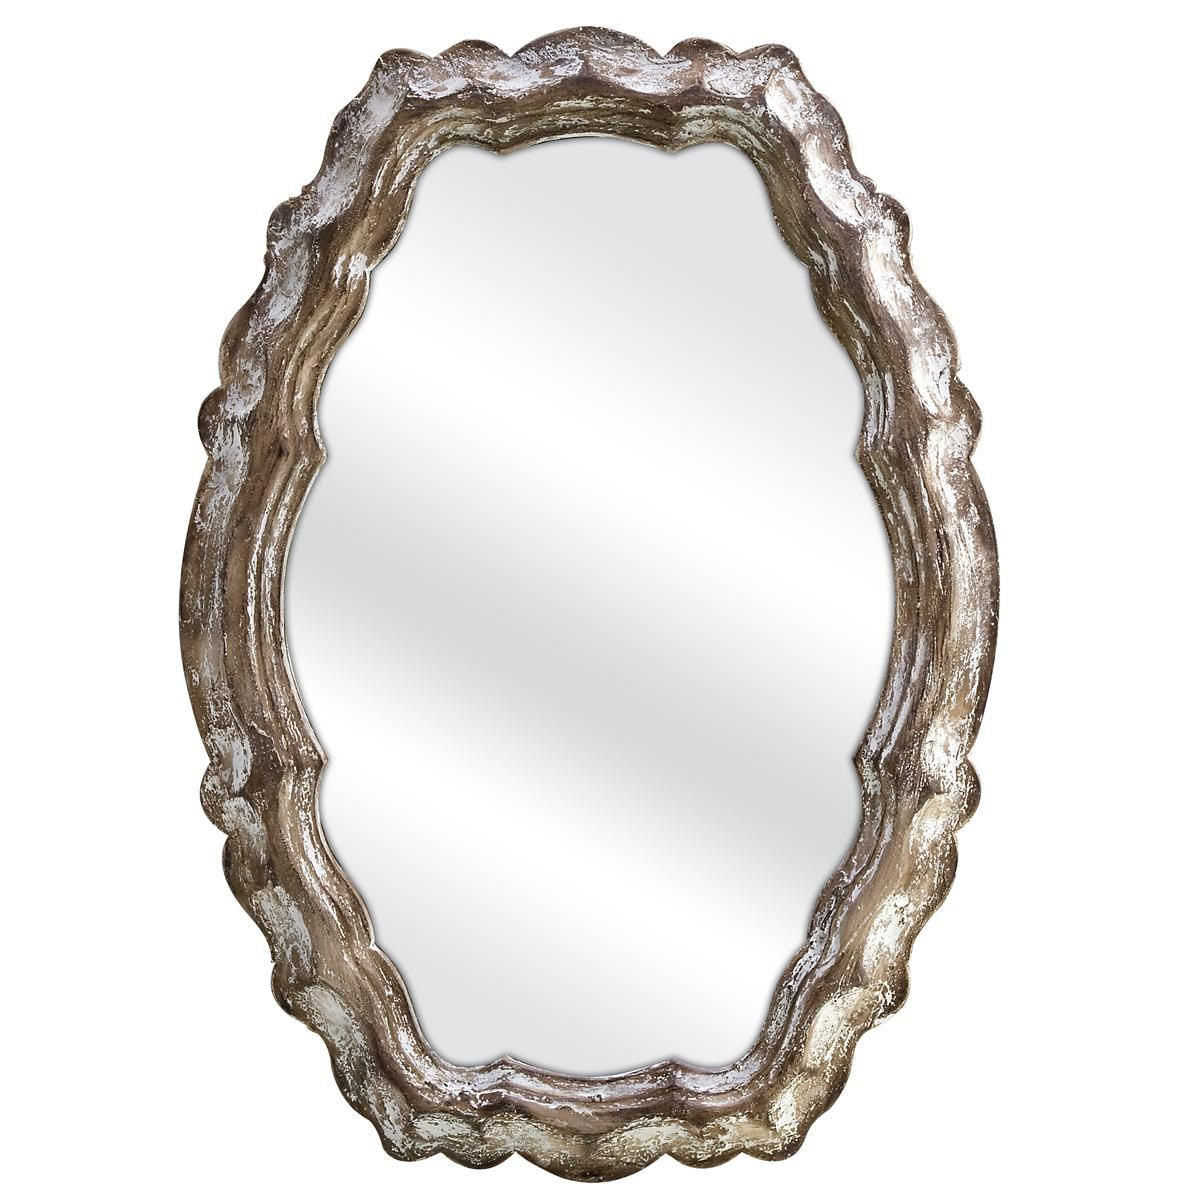 Vintage Wood Scallop Mirror | For the Home | Pinterest